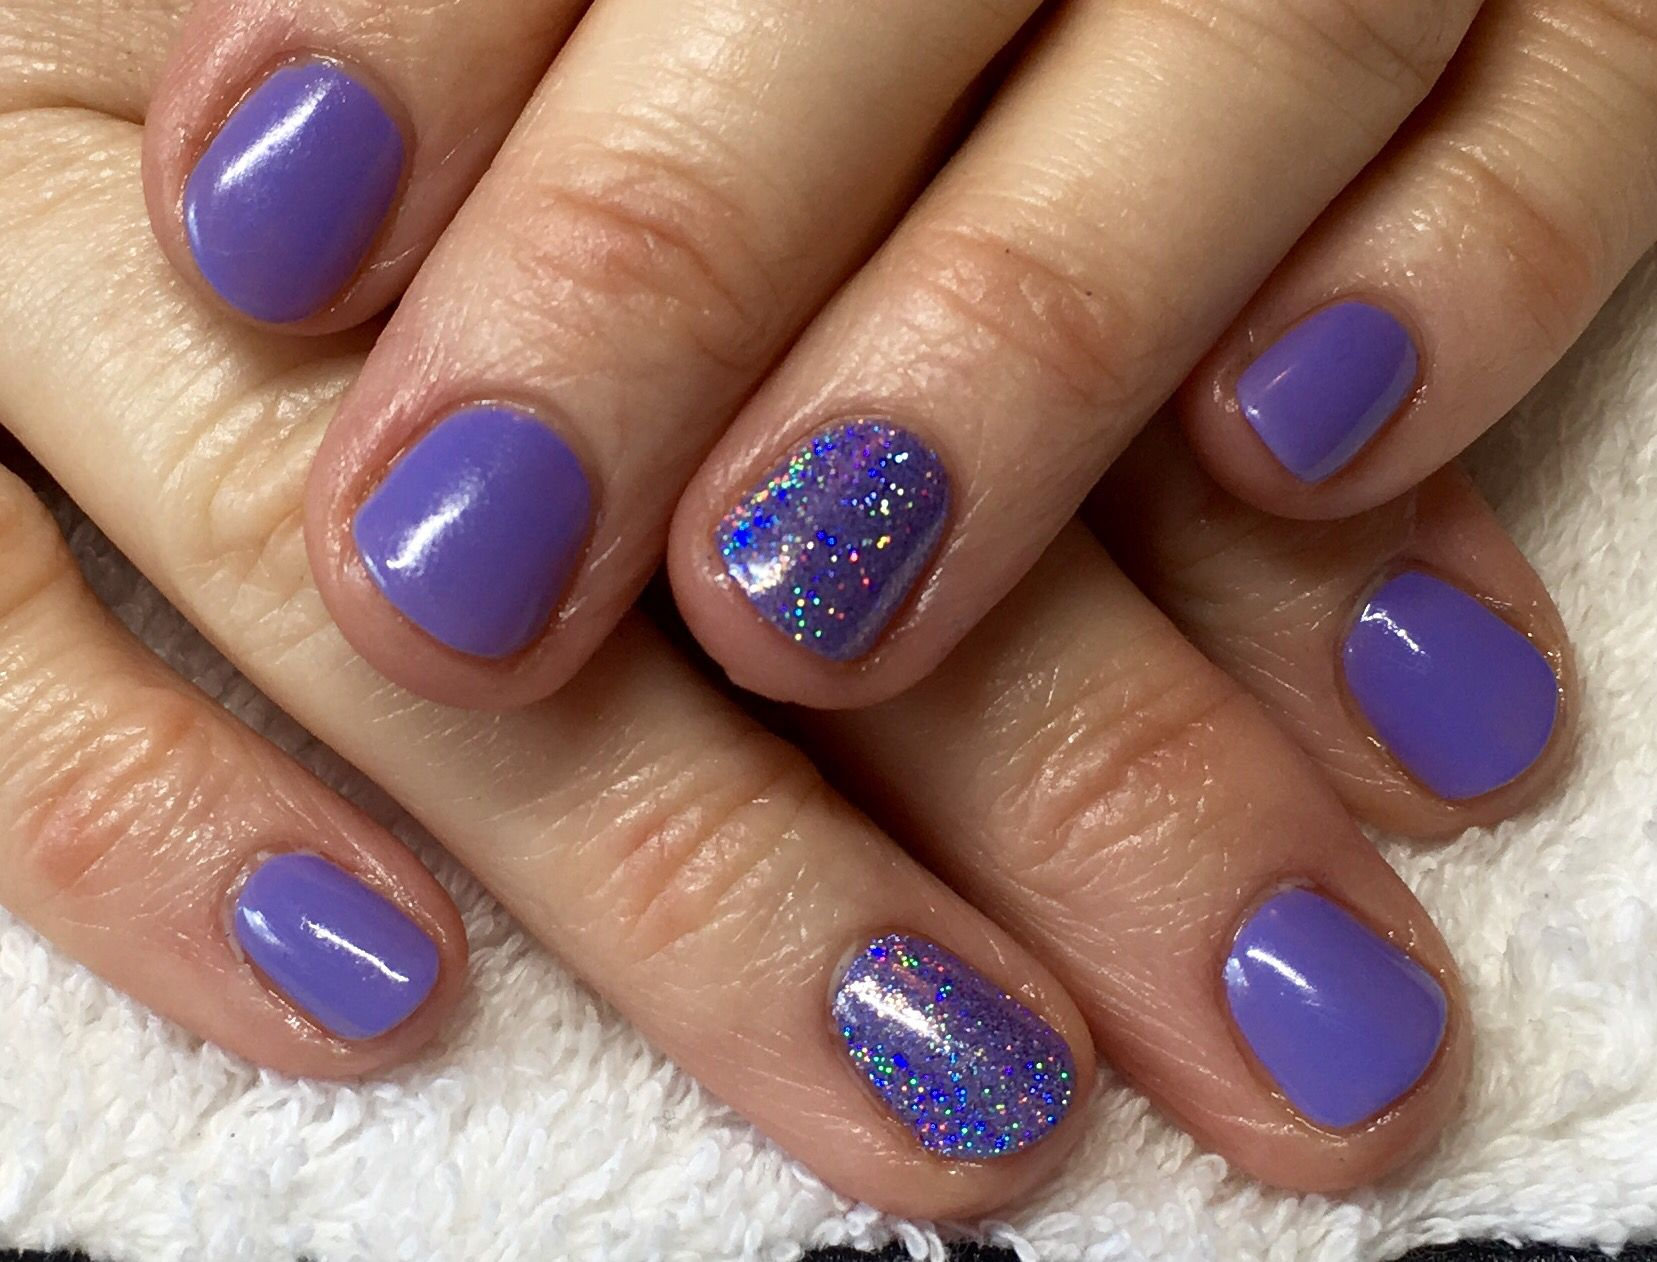 CND Shellac Wisteria Haze with Lecente Mortar Glitter at Nails by ...